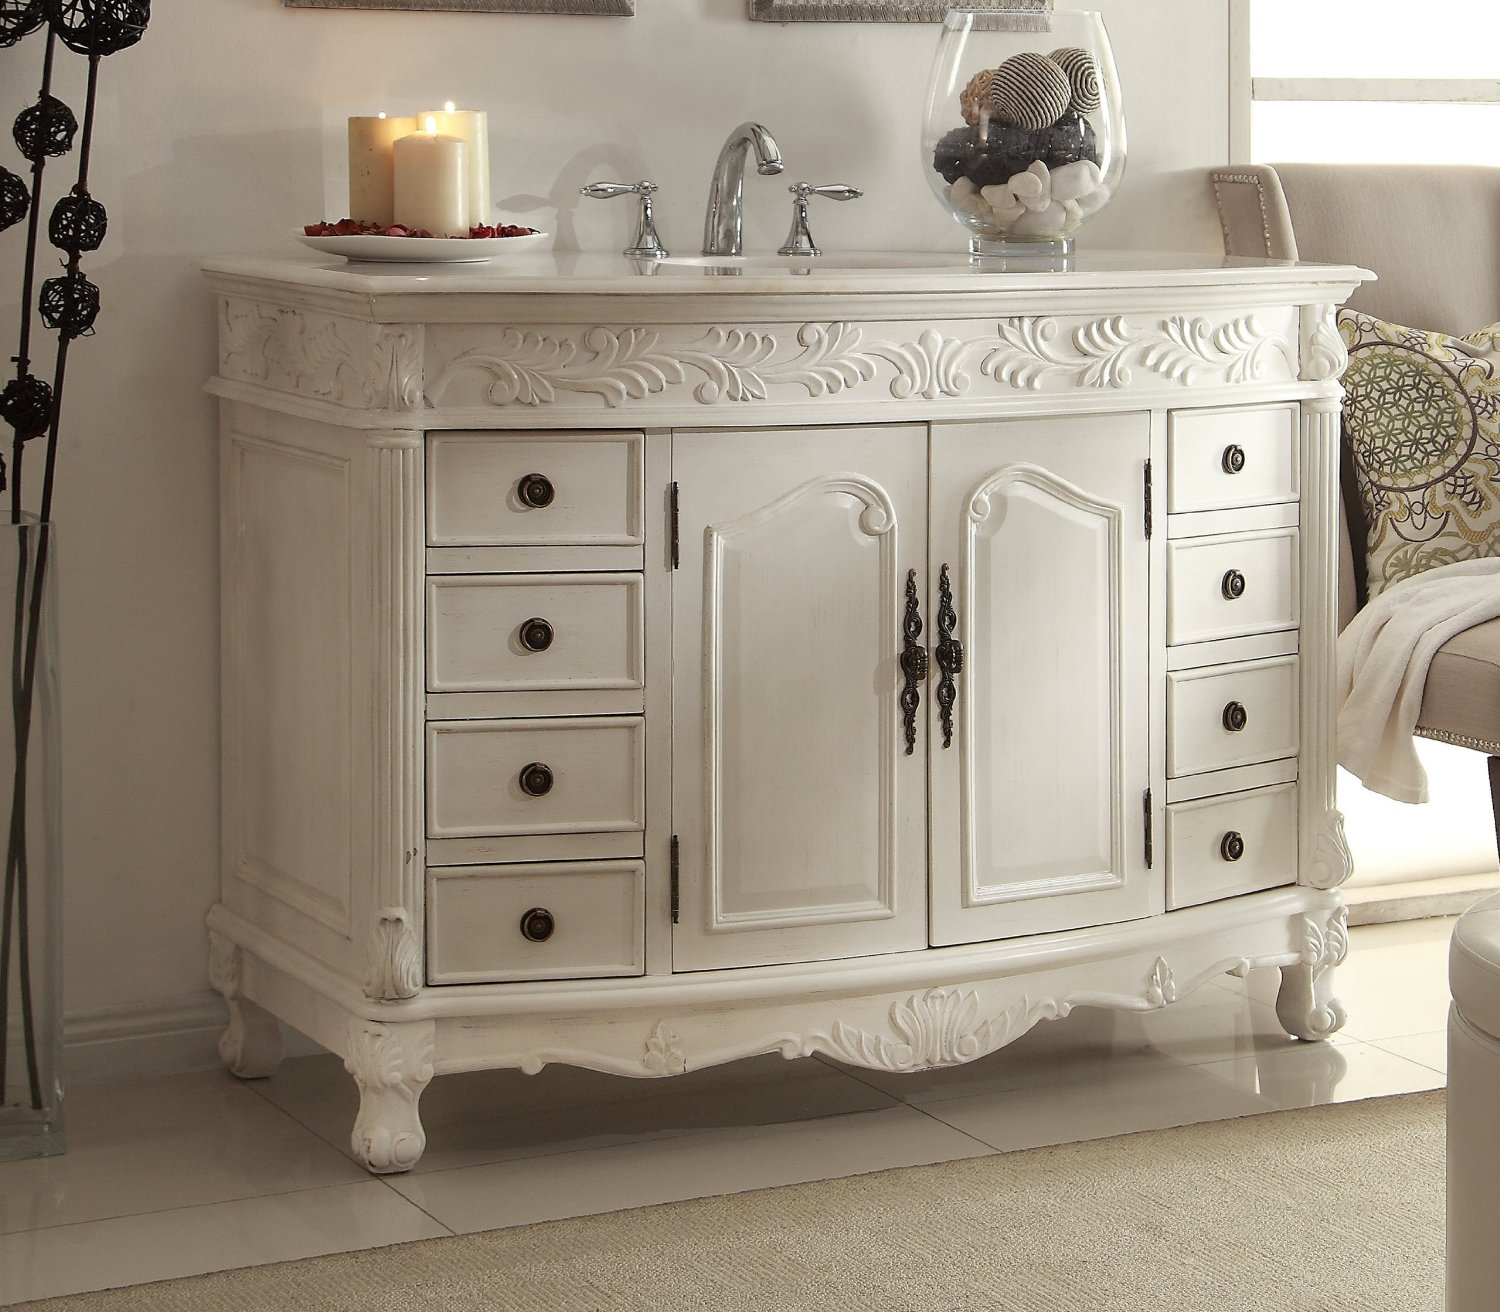 Adelina 48 inch antique white bathroom vanity white marble top Marble top bathroom vanities